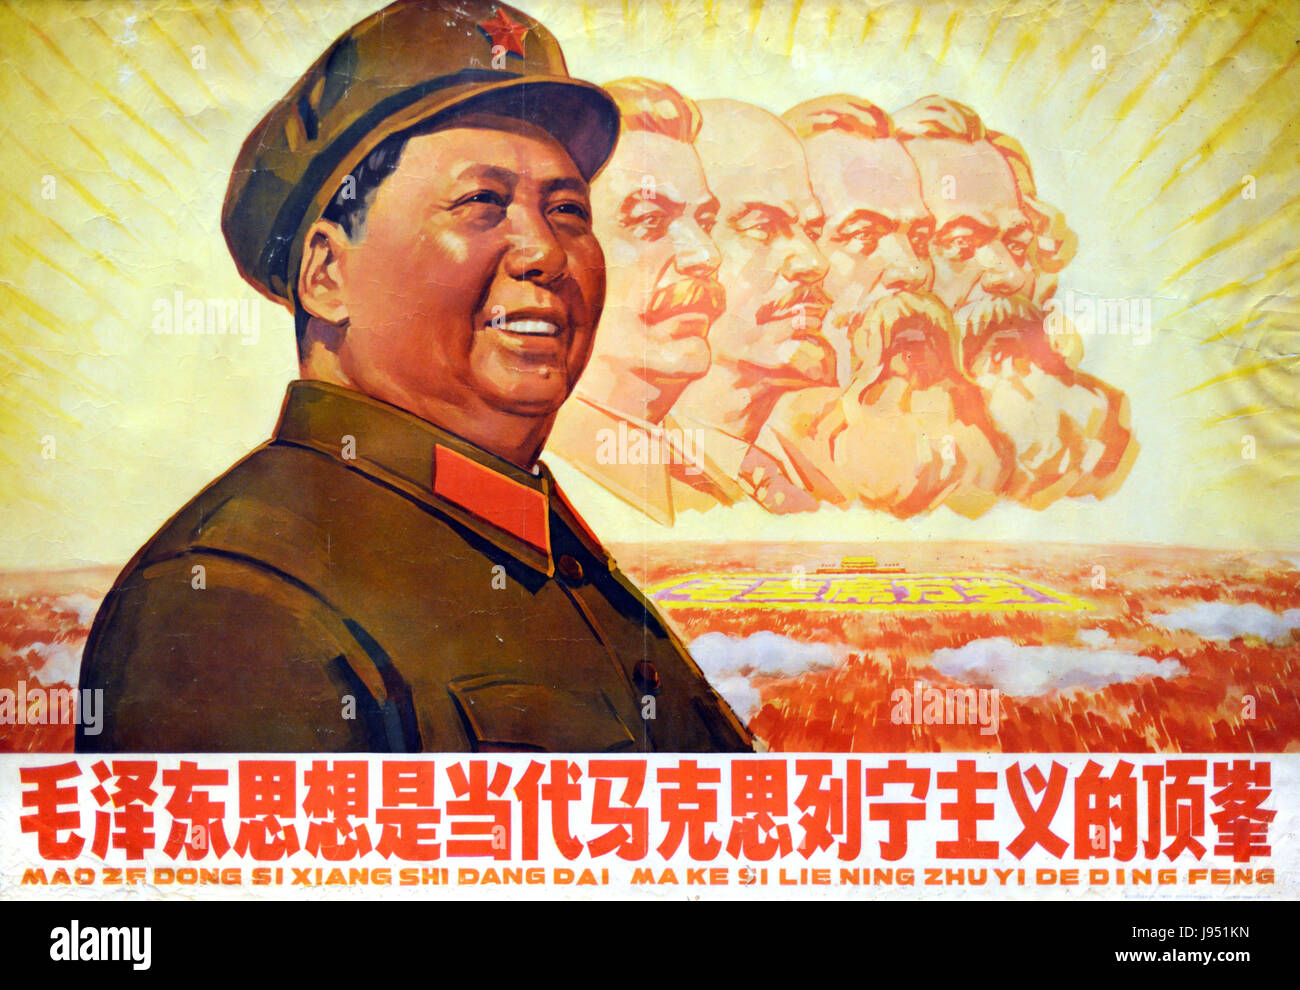 Mao Zedong, Mao Tse-tung or Chairman Mao Communist Propaganda Poster from 1940s. - Stock Image